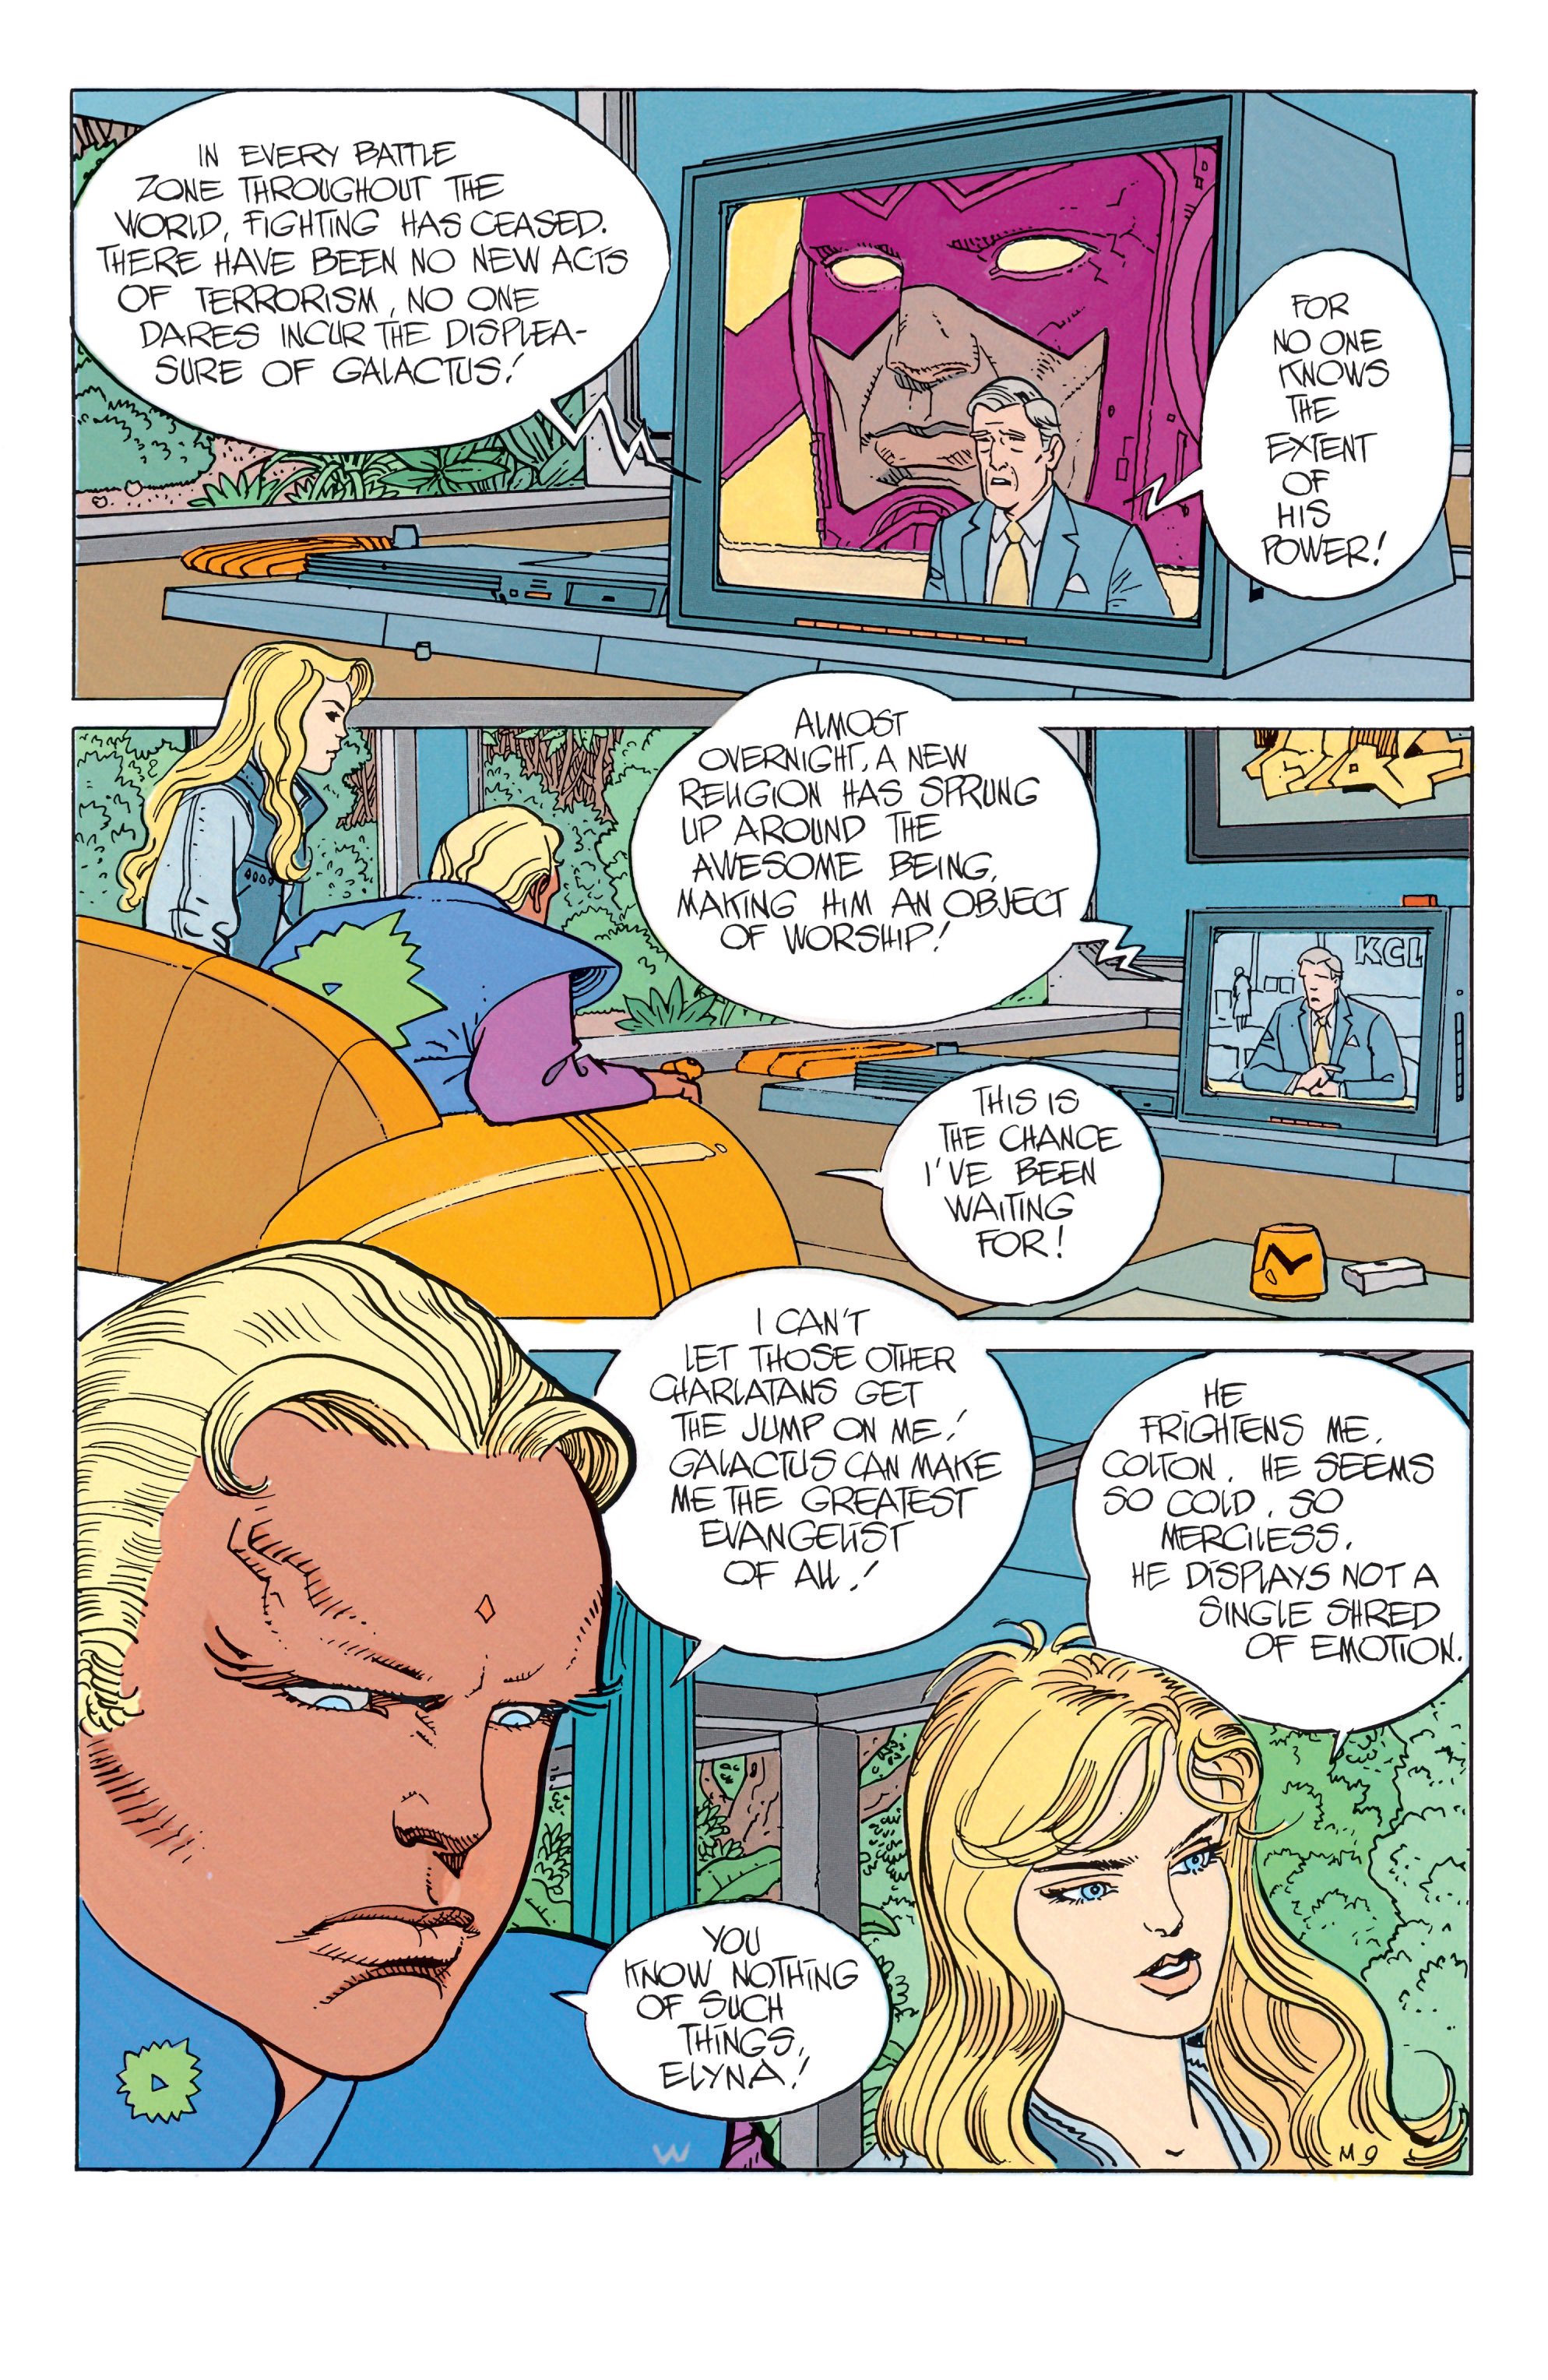 Read online Silver Surfer: Parable comic -  Issue # TPB - 14